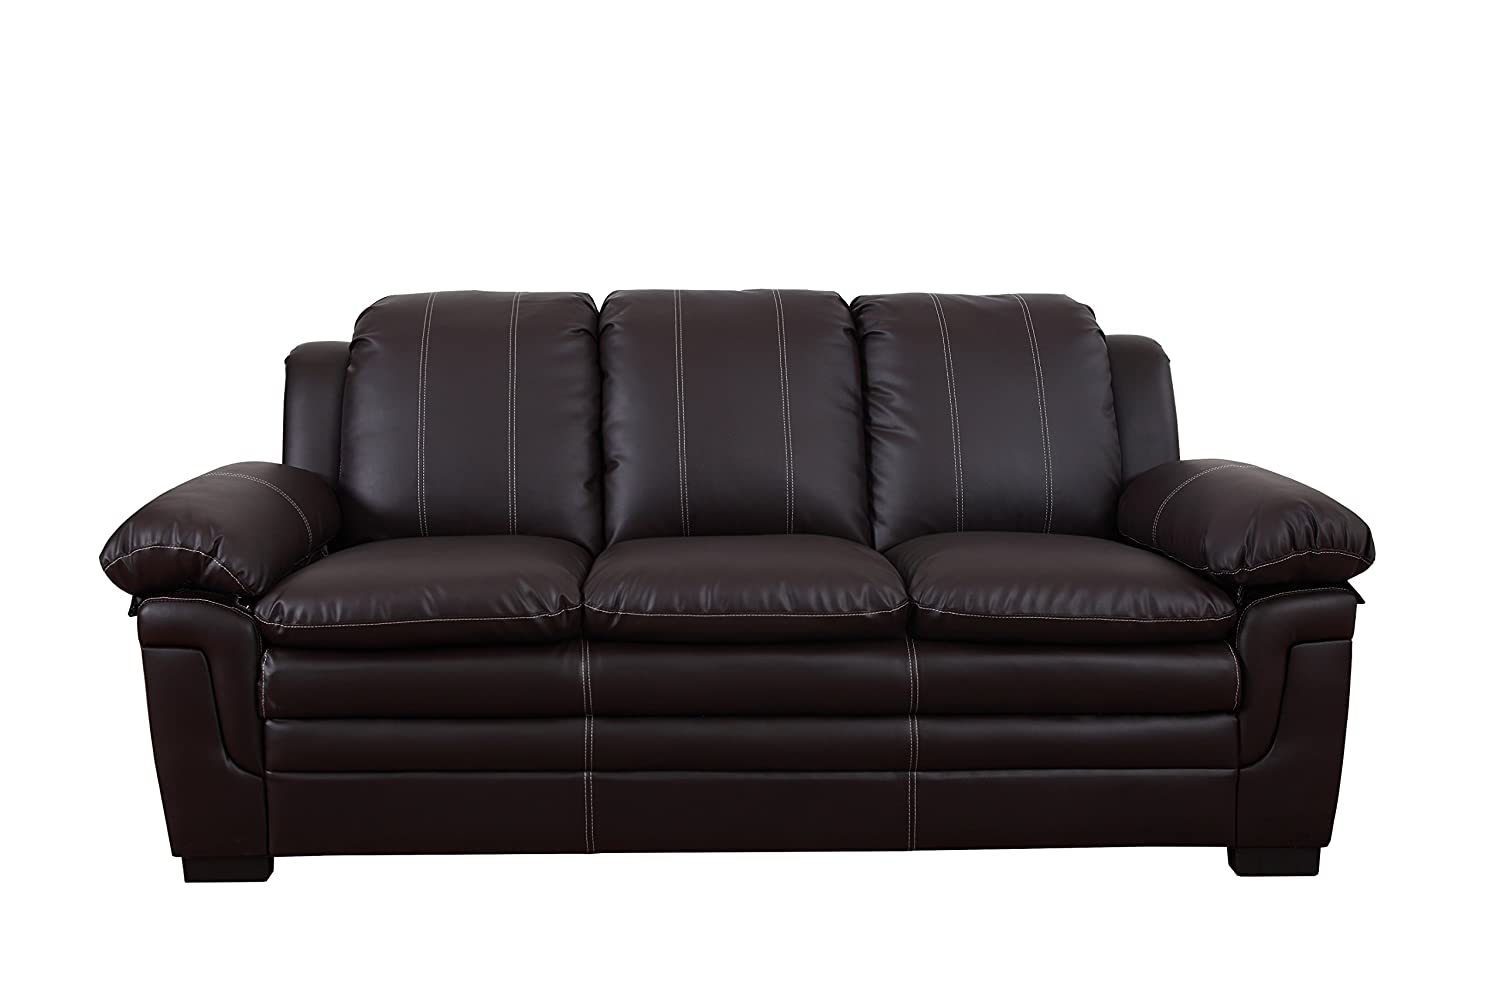 Amazon Divano Roma Classic Bonded Leather Sofa and Loveseat